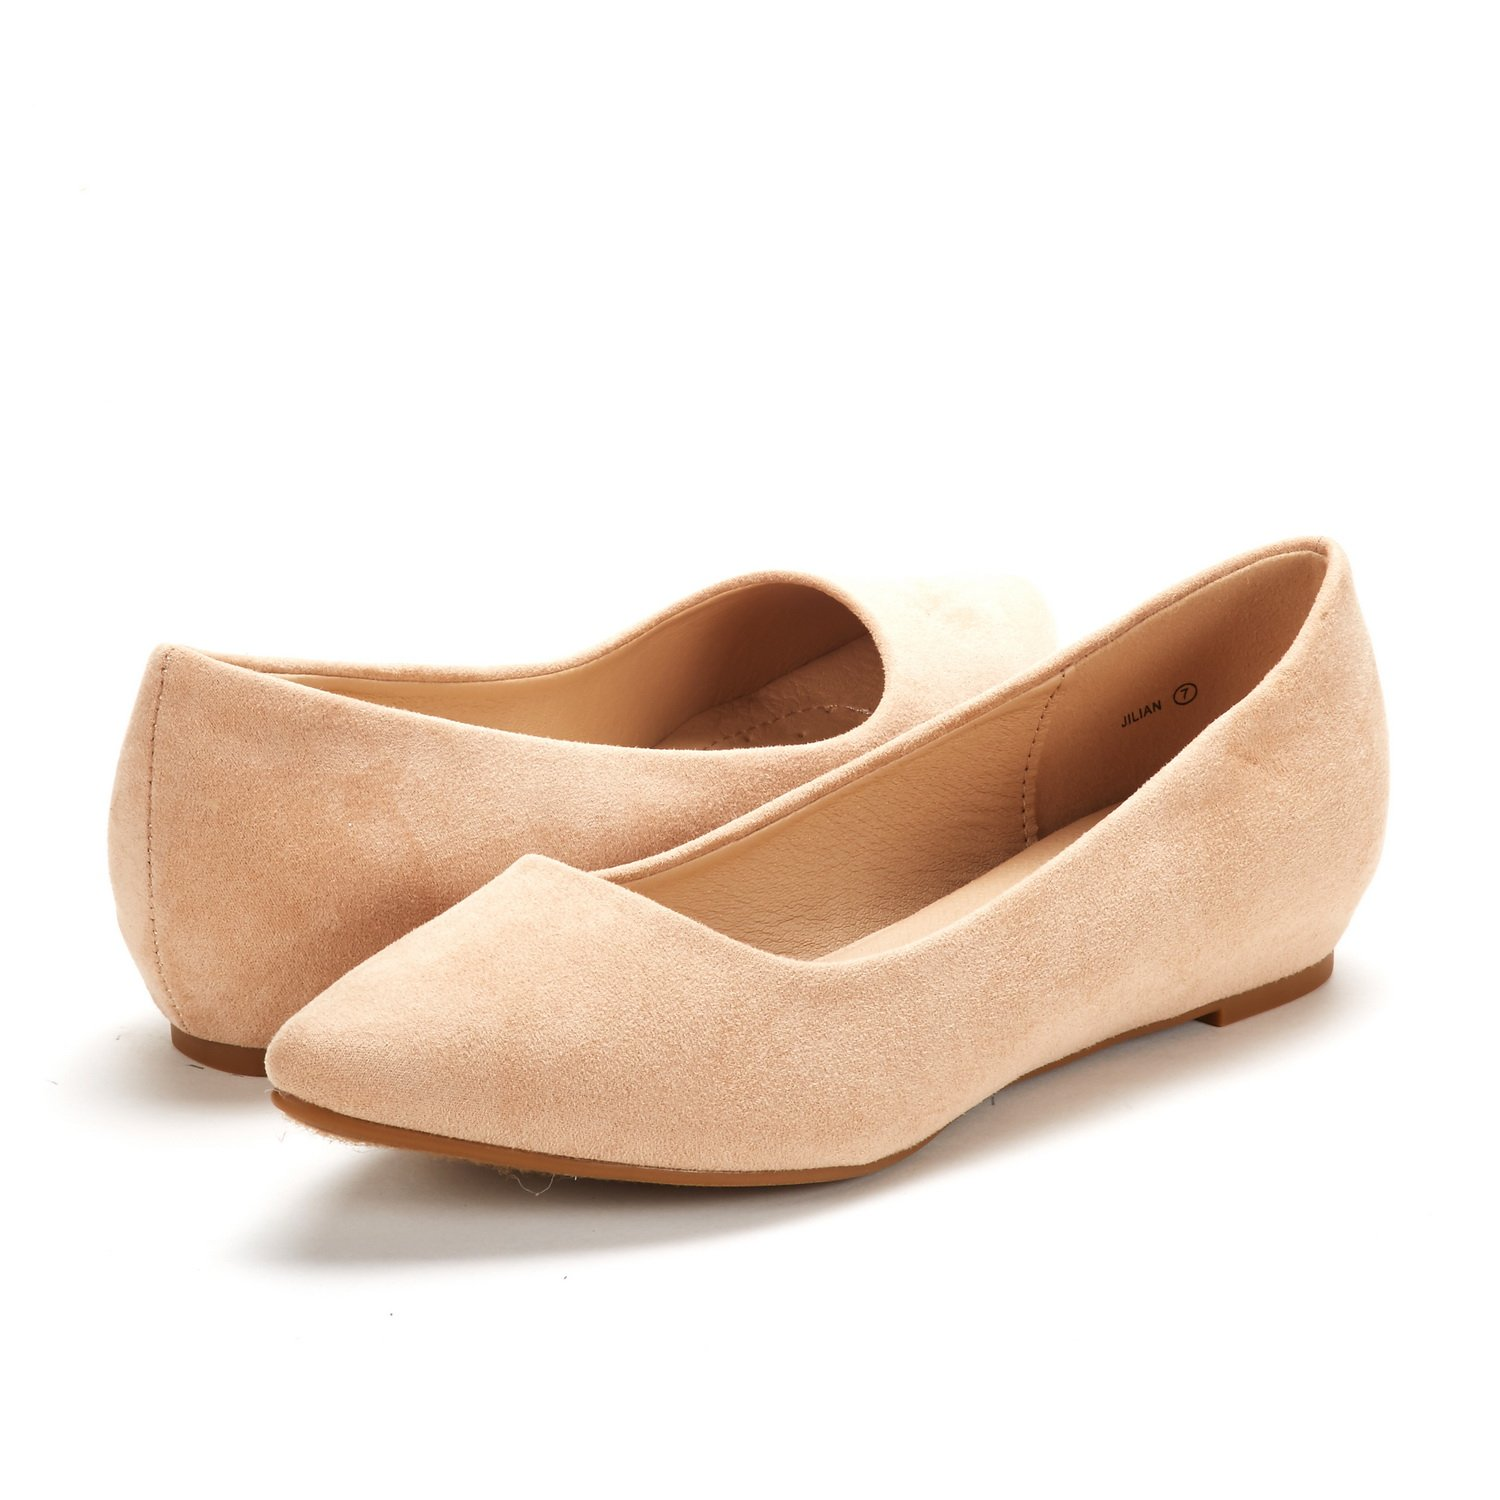 DREAM-PAIRS-Women-Low-Wedge-Flats-Ladies-Pointed-Toe-Slip-On-Comfort-Flat-Shoes thumbnail 51